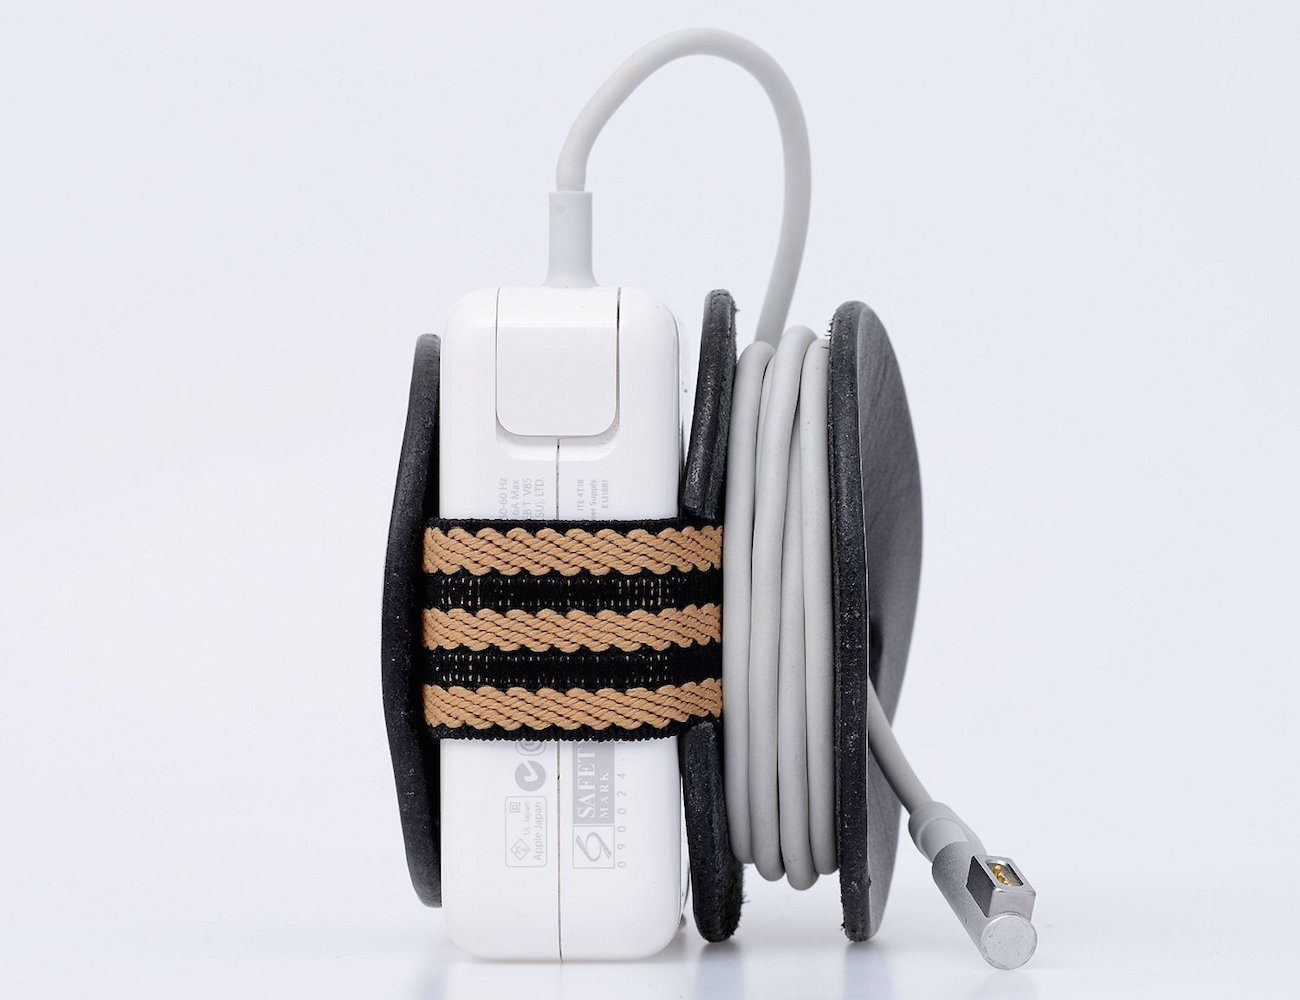 Powerplay macbook adapter cord organizer Extension cable organizer